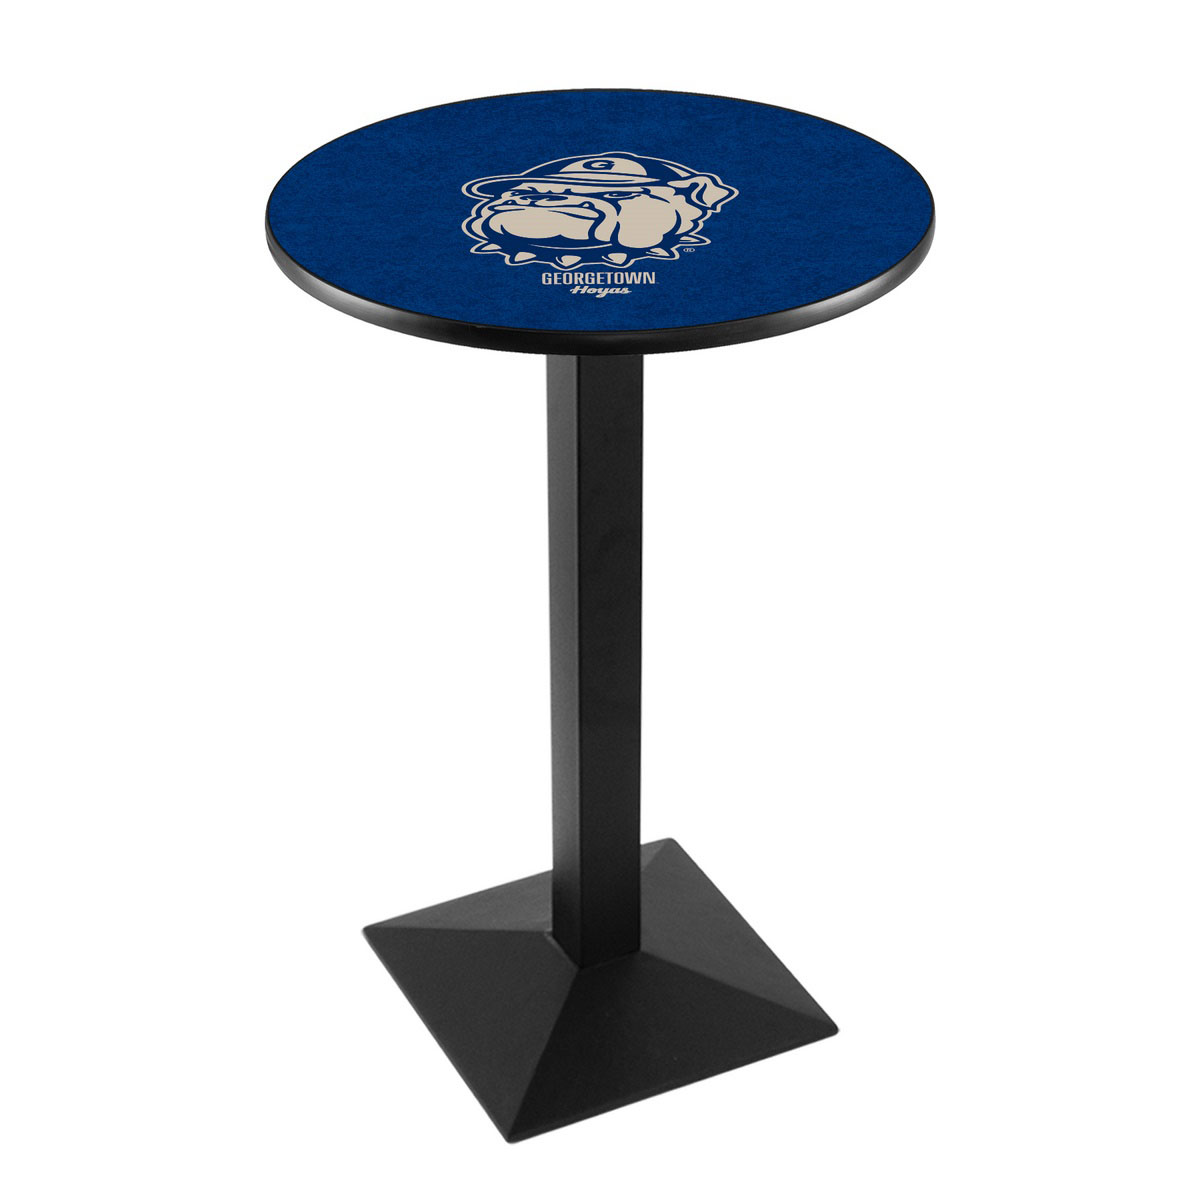 New Georgetown University Logo Pub Bar Table Square Stand Product Photo